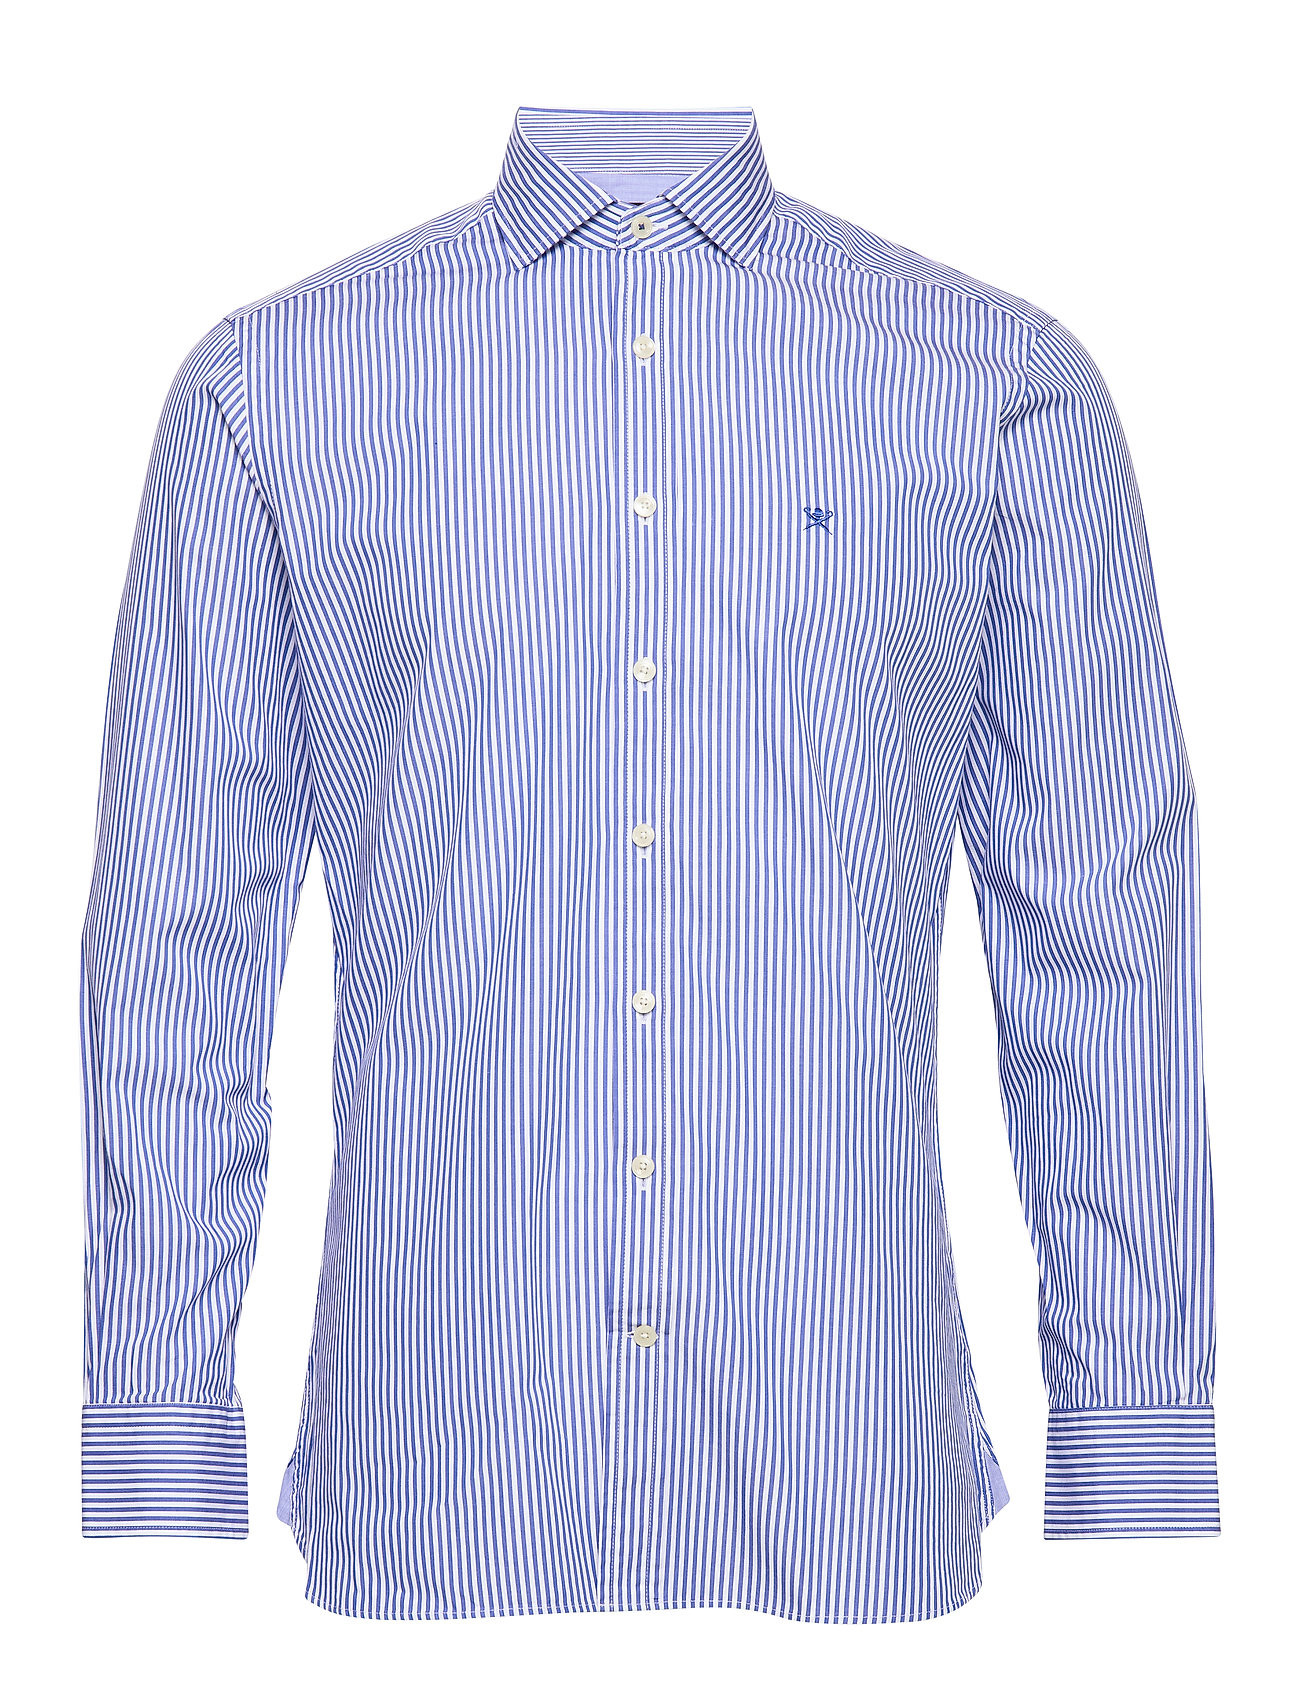 Hackett BENGAL STR KS - 551BLUE